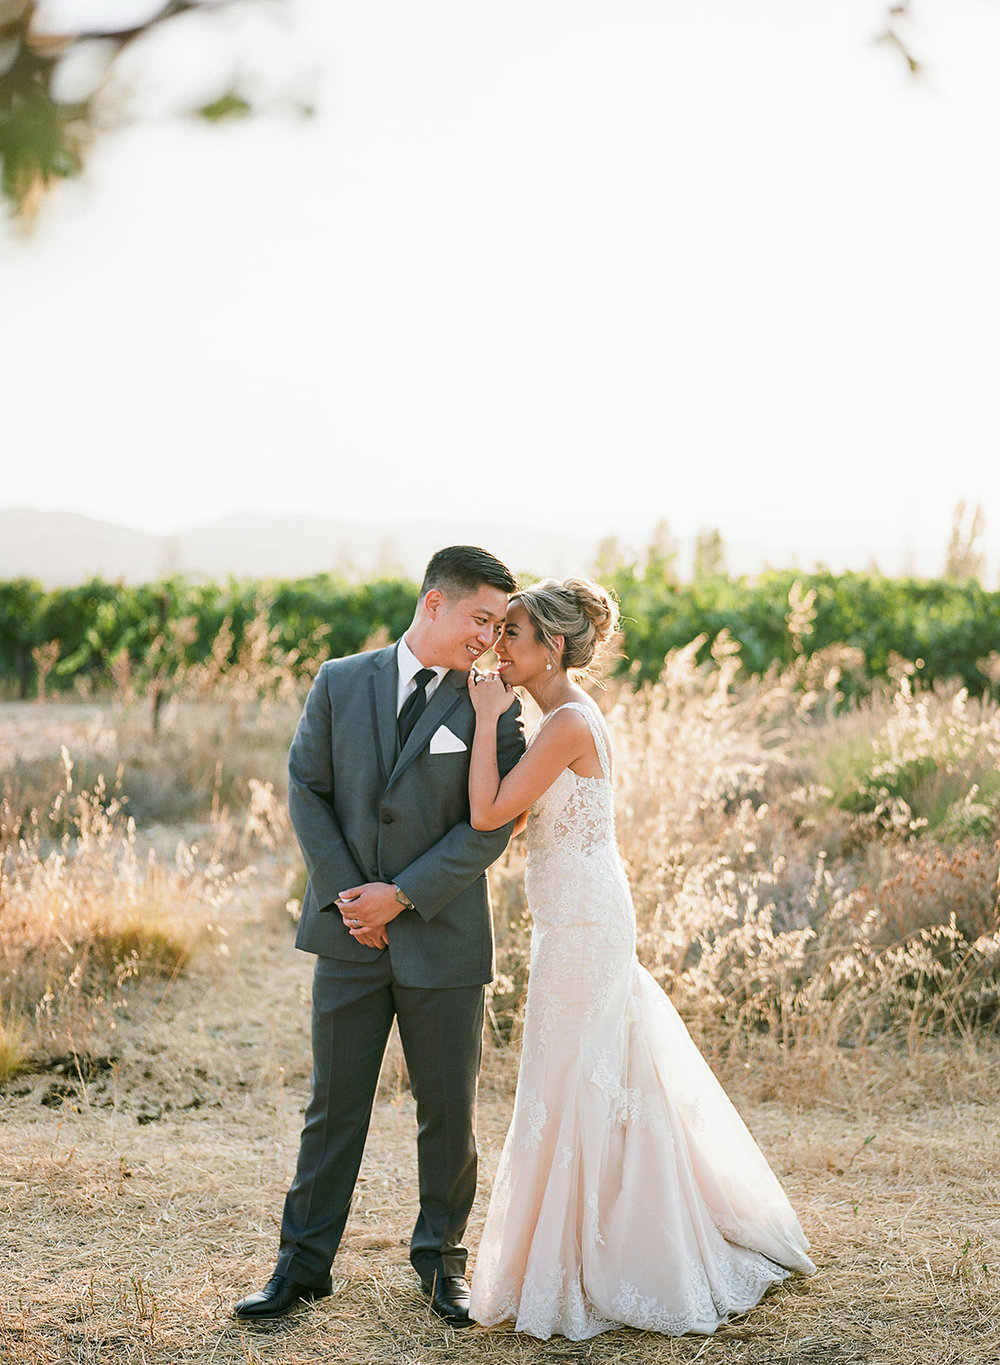 Enza + Jeff | Las Positas Winery